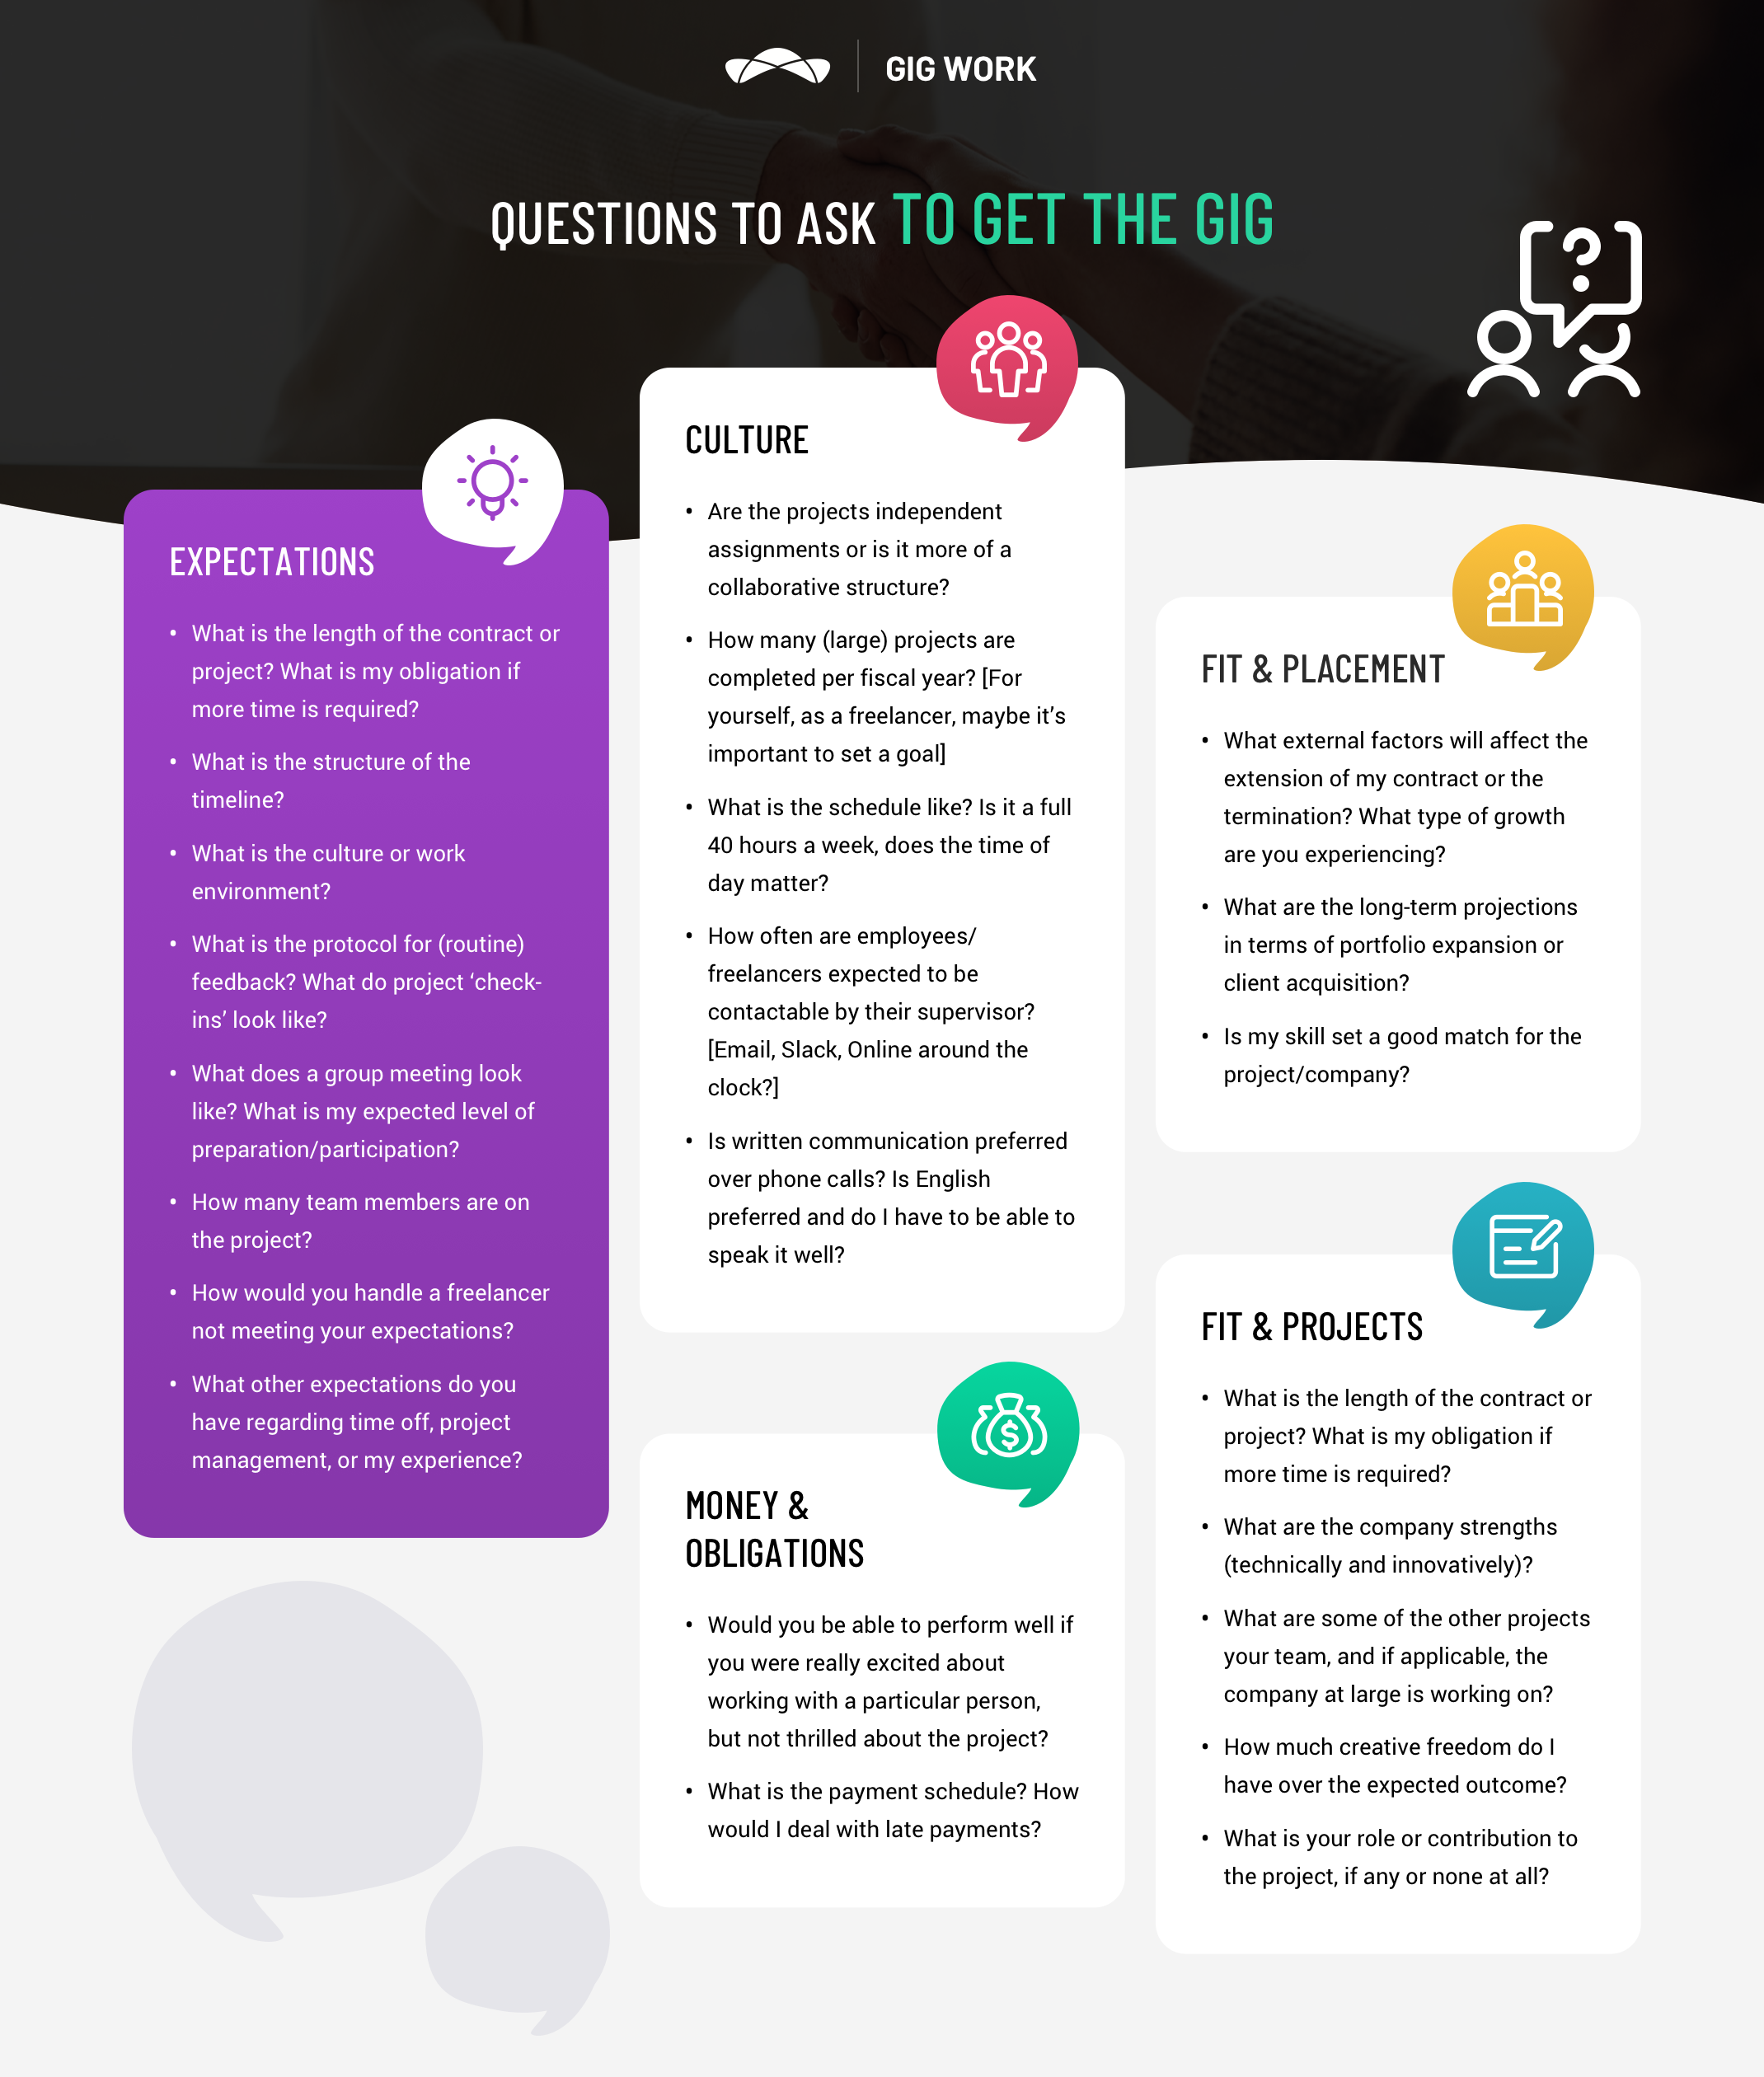 Questions-Gig Work Infographic